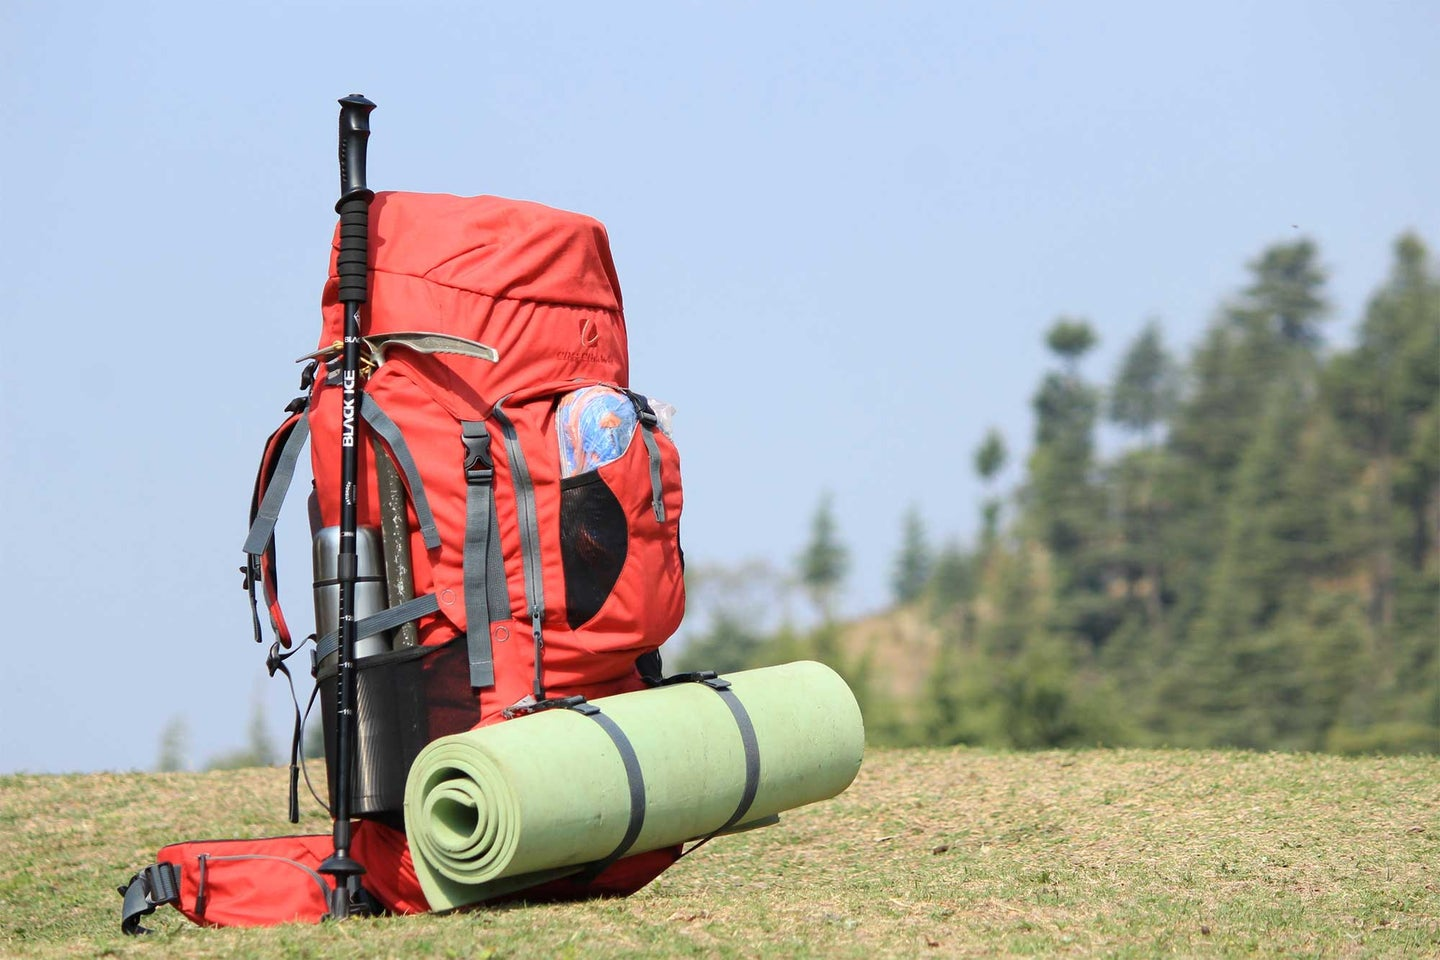 Backpacking equipment on a hill